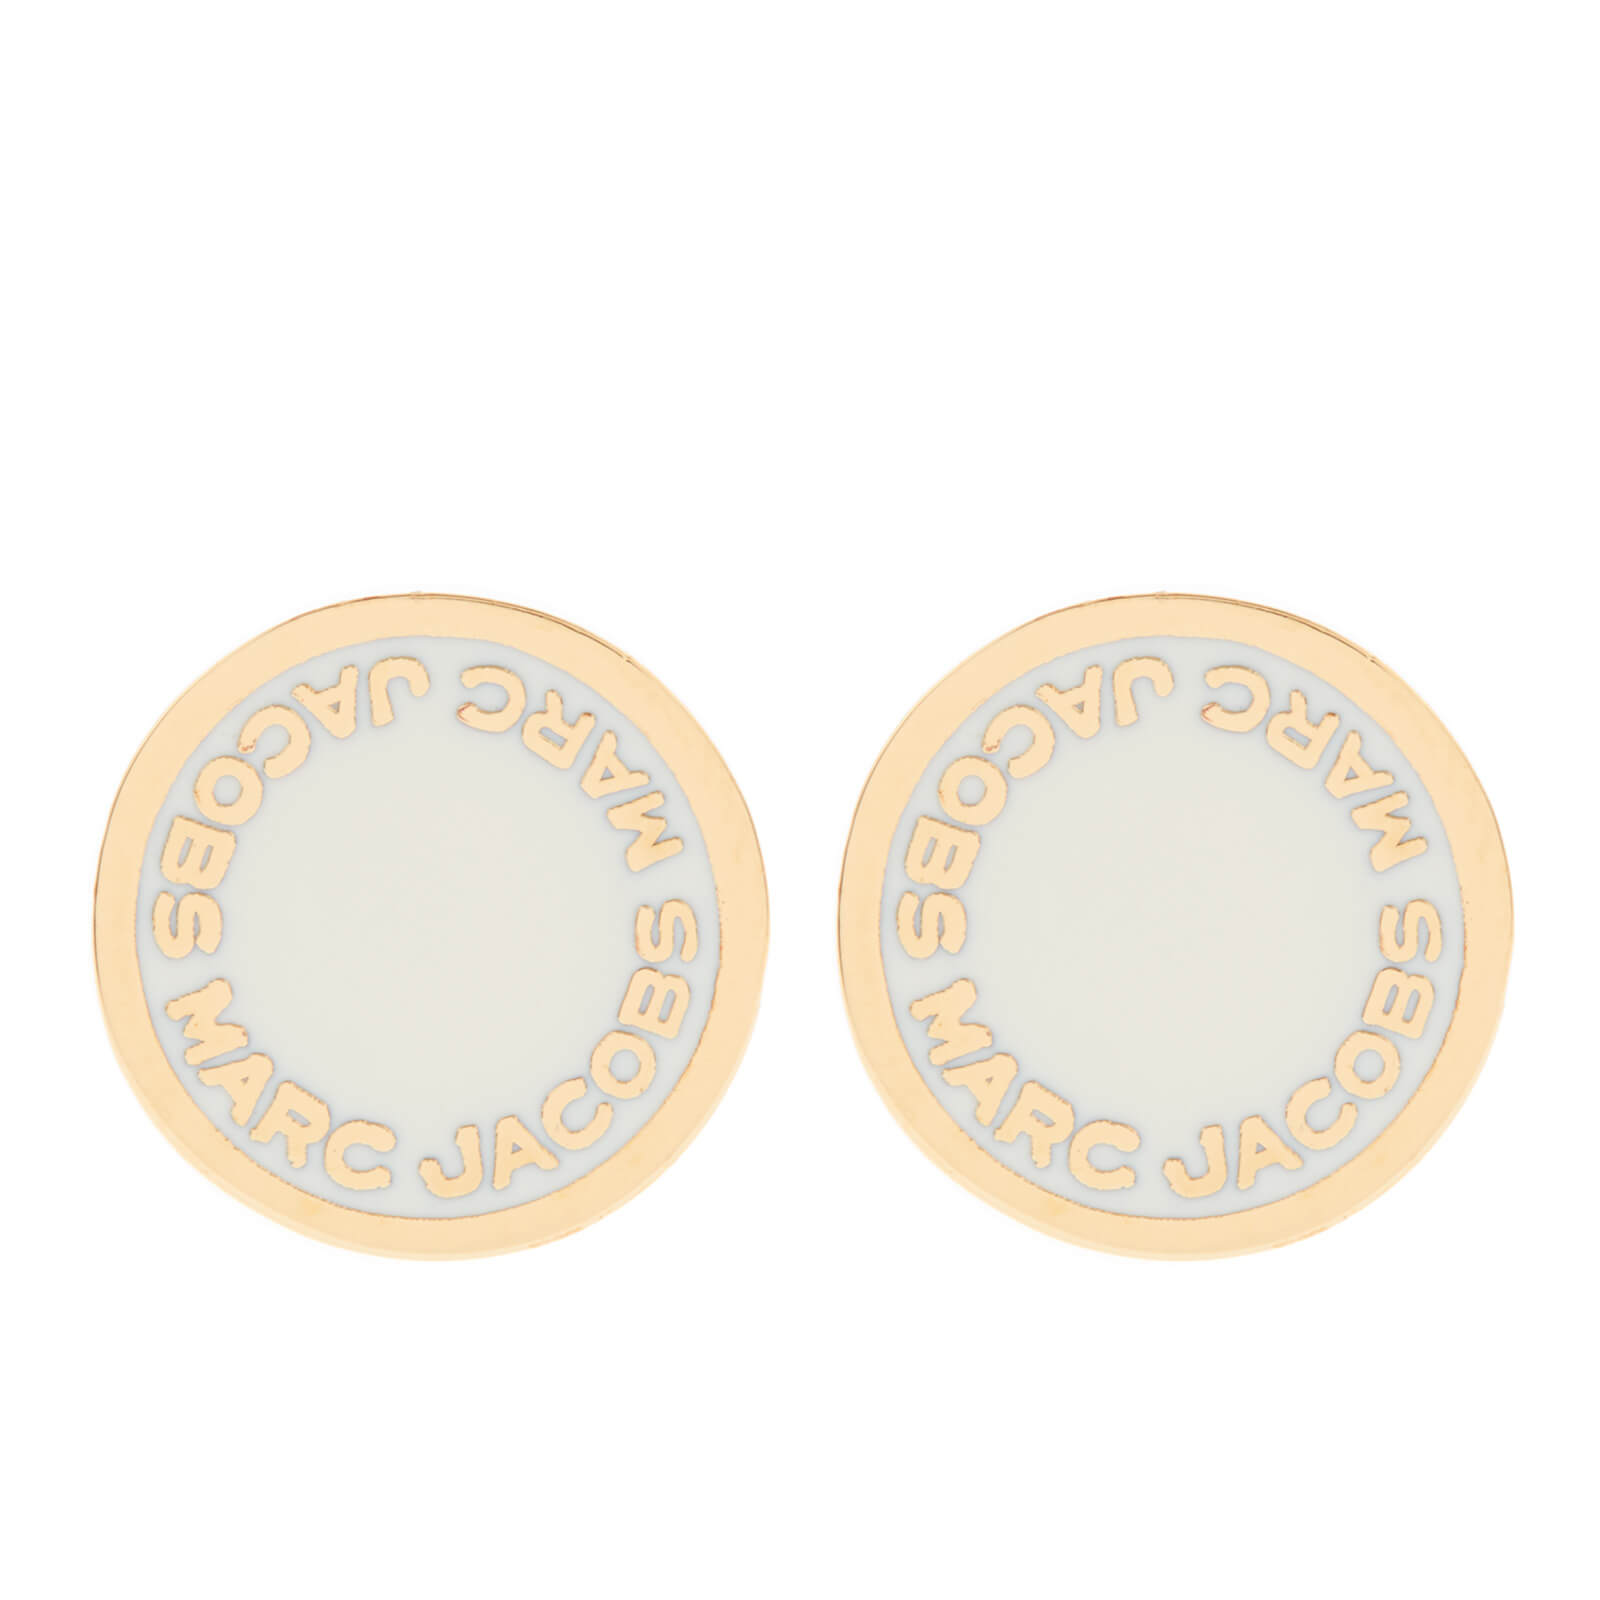 97fa7caf3 Marc Jacobs Women's Enamel Logo Disc Stud Earrings - Cream - Free UK  Delivery over £50